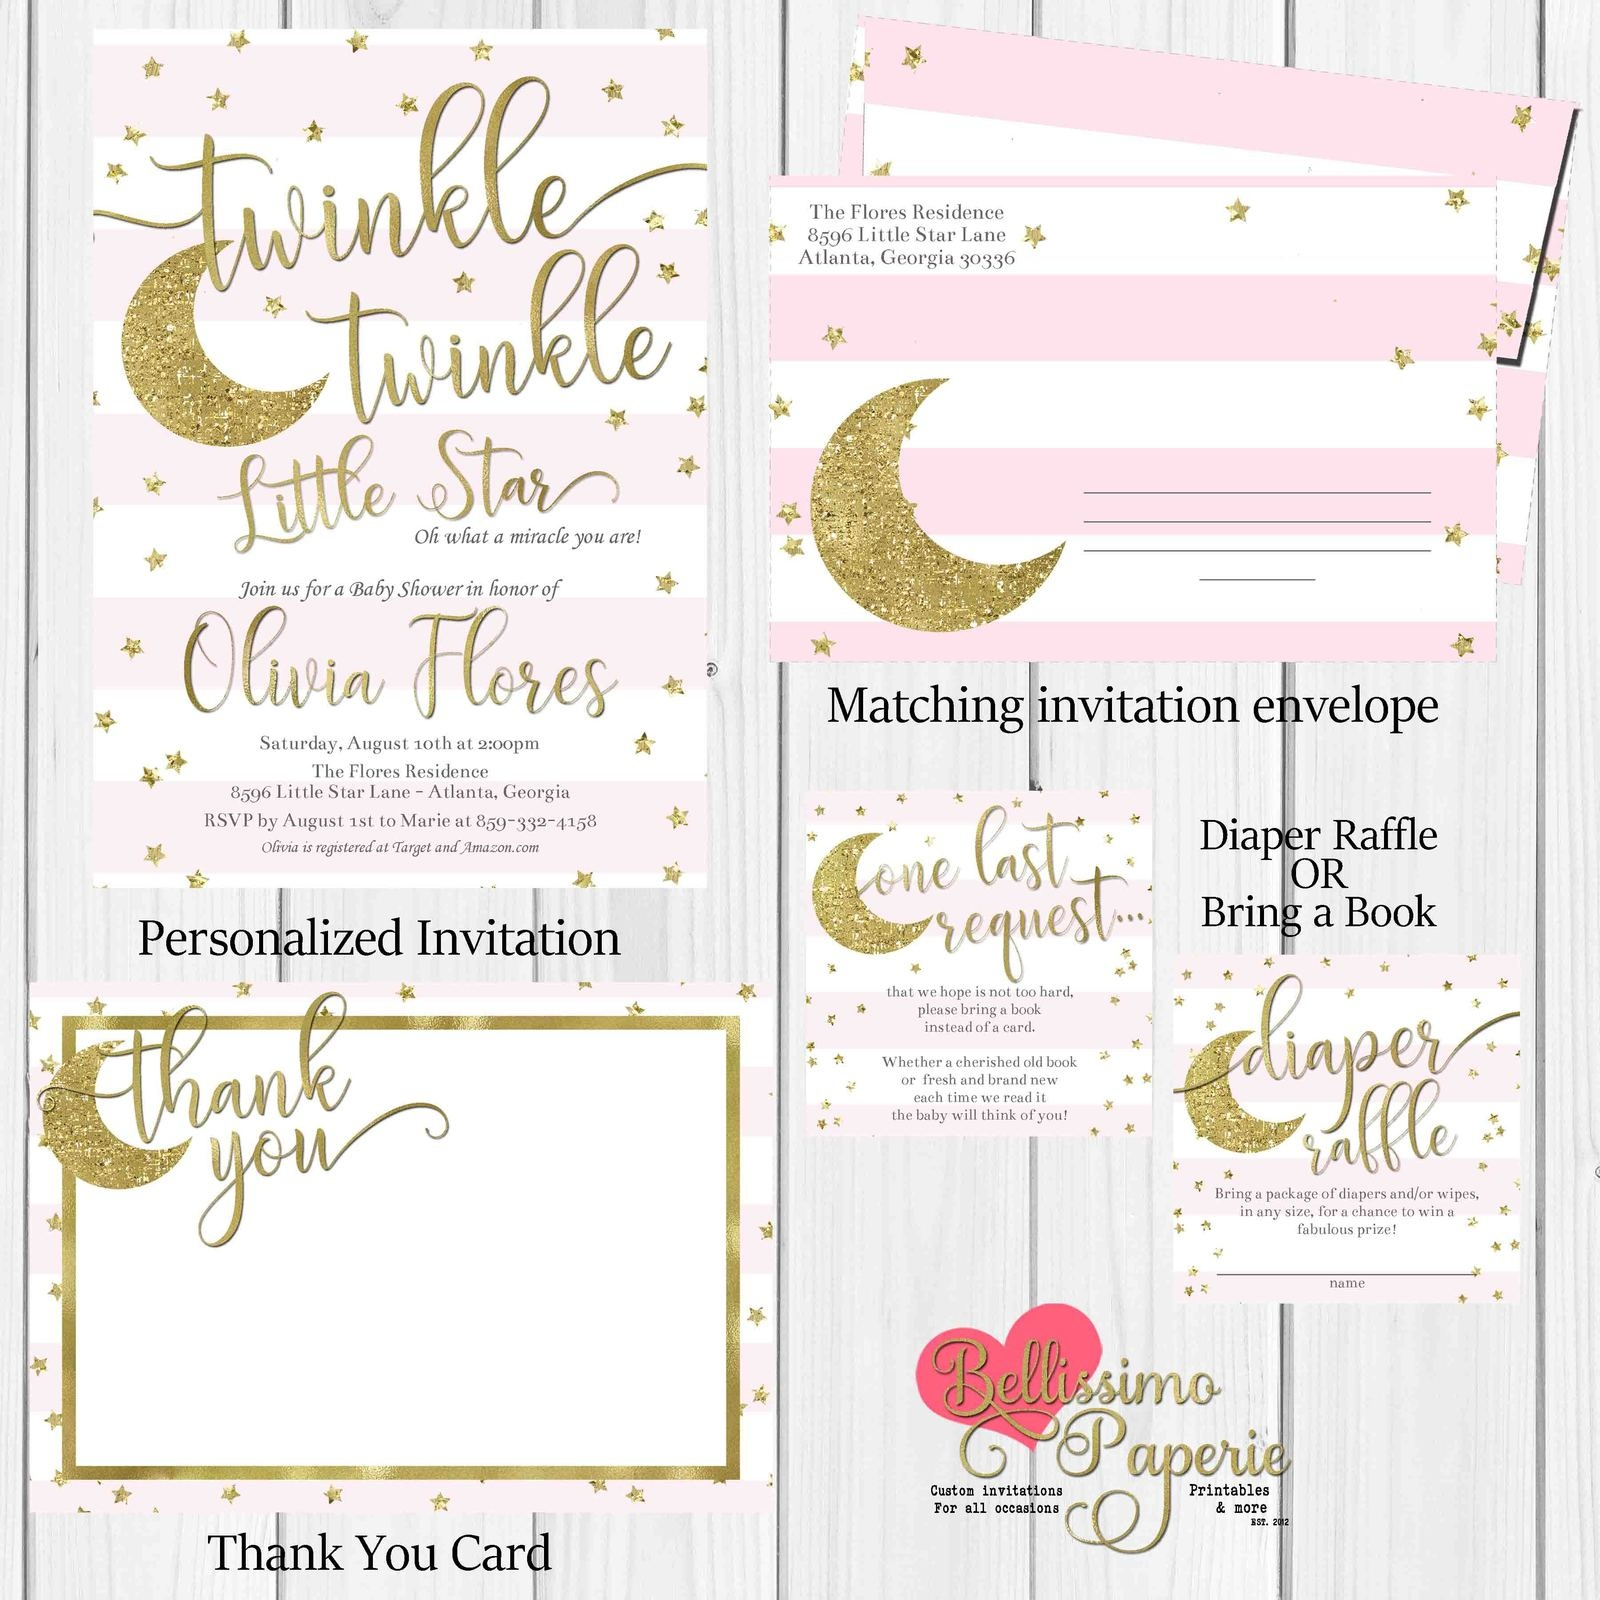 Twinkle Twinkle Little Star Baby Shower And 50 Similar Items - Free Printable Twinkle Twinkle Little Star Baby Shower Invitations